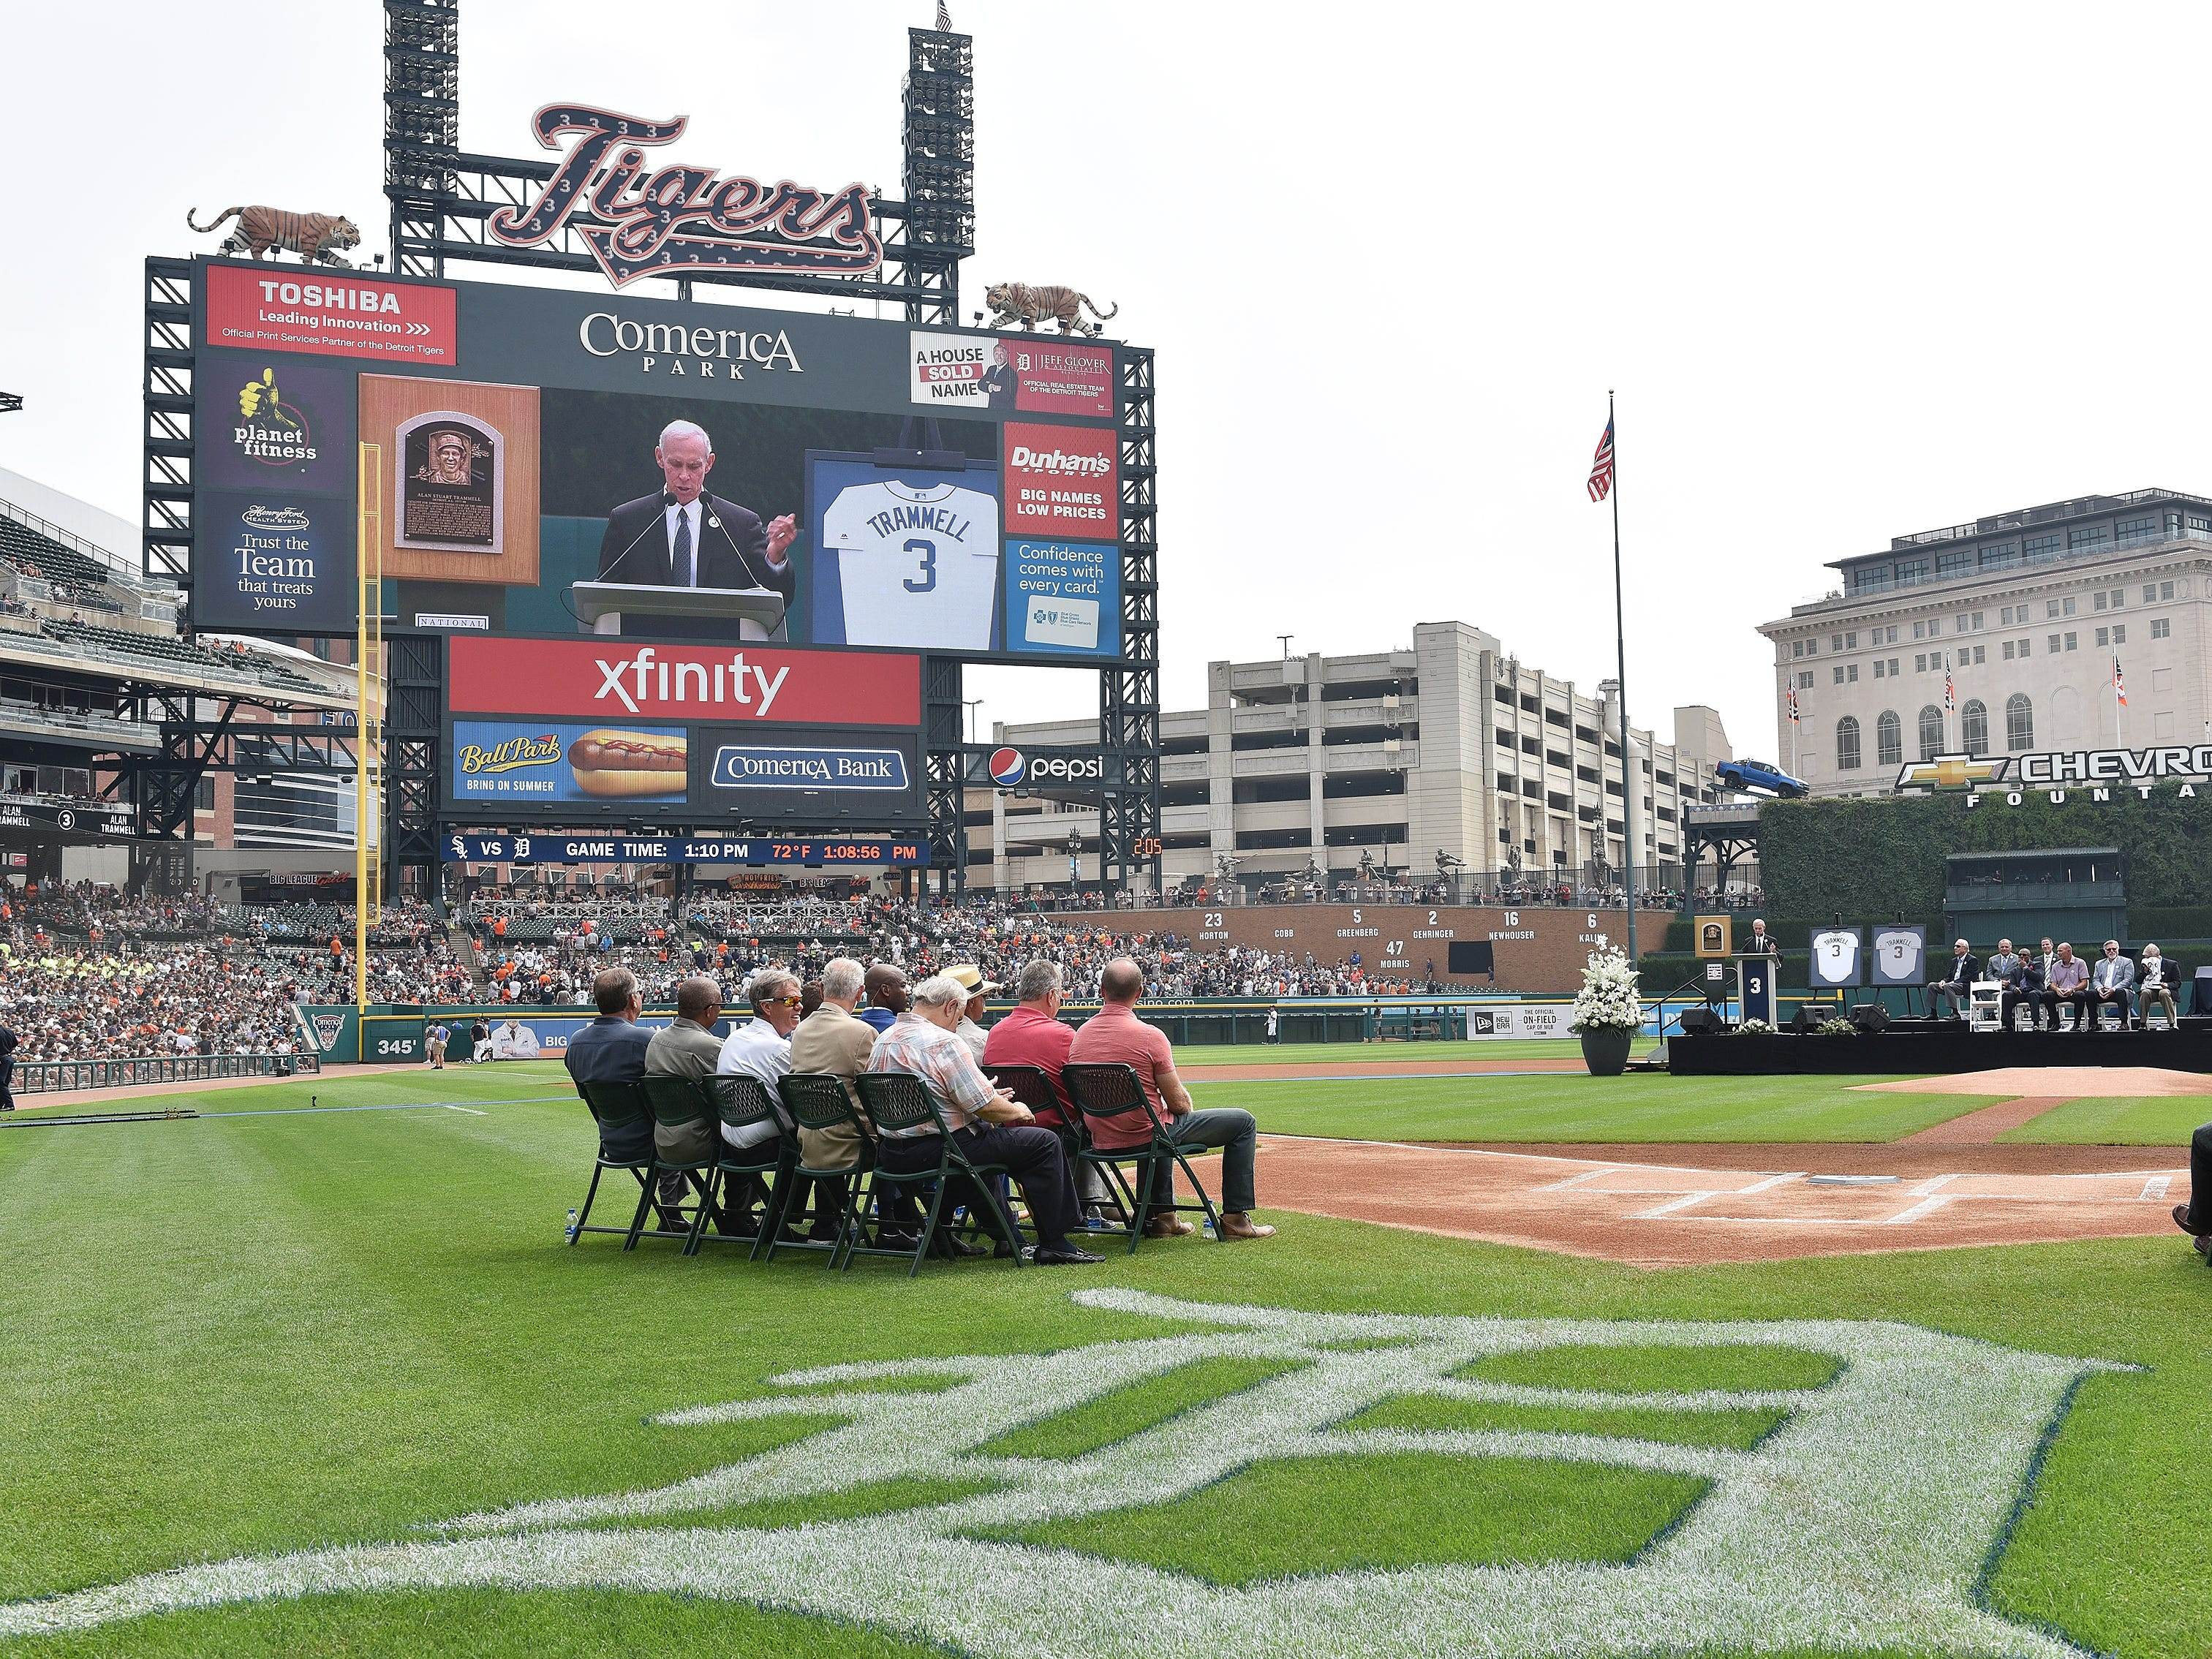 Alan Trammell speaks during a special pregame ceremony to retire his number.